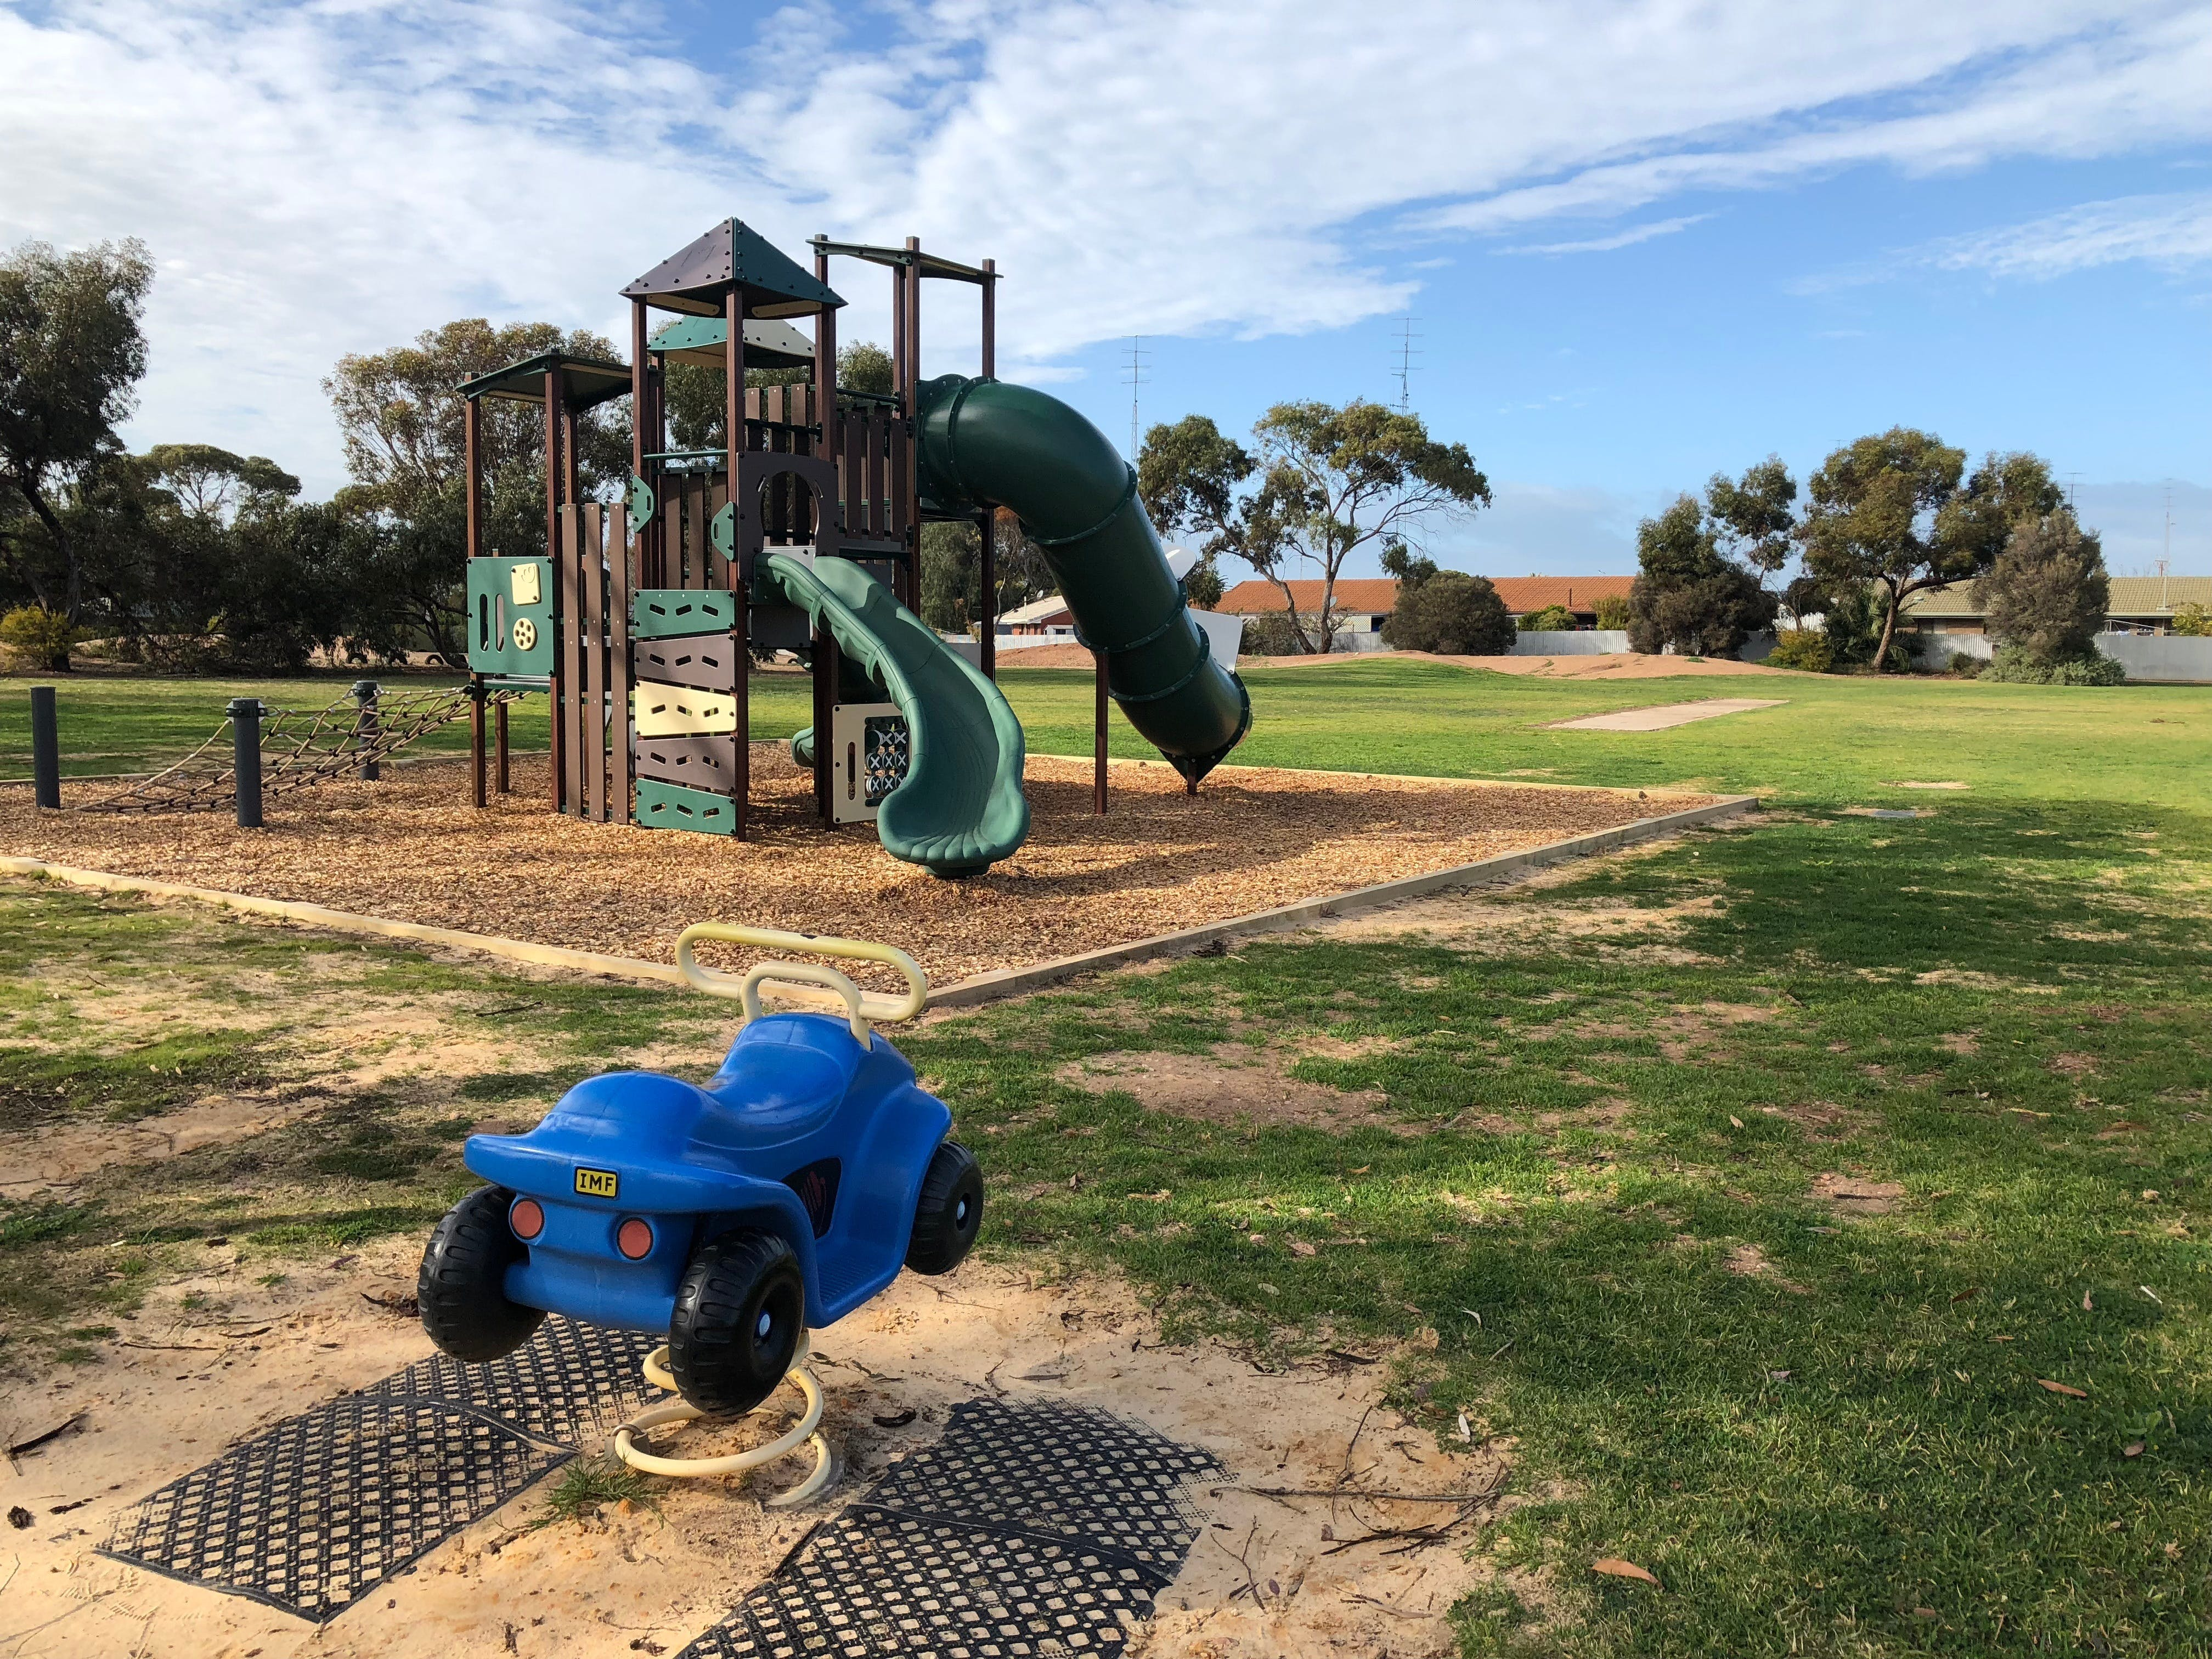 New Town Playground - Tourism Brisbane